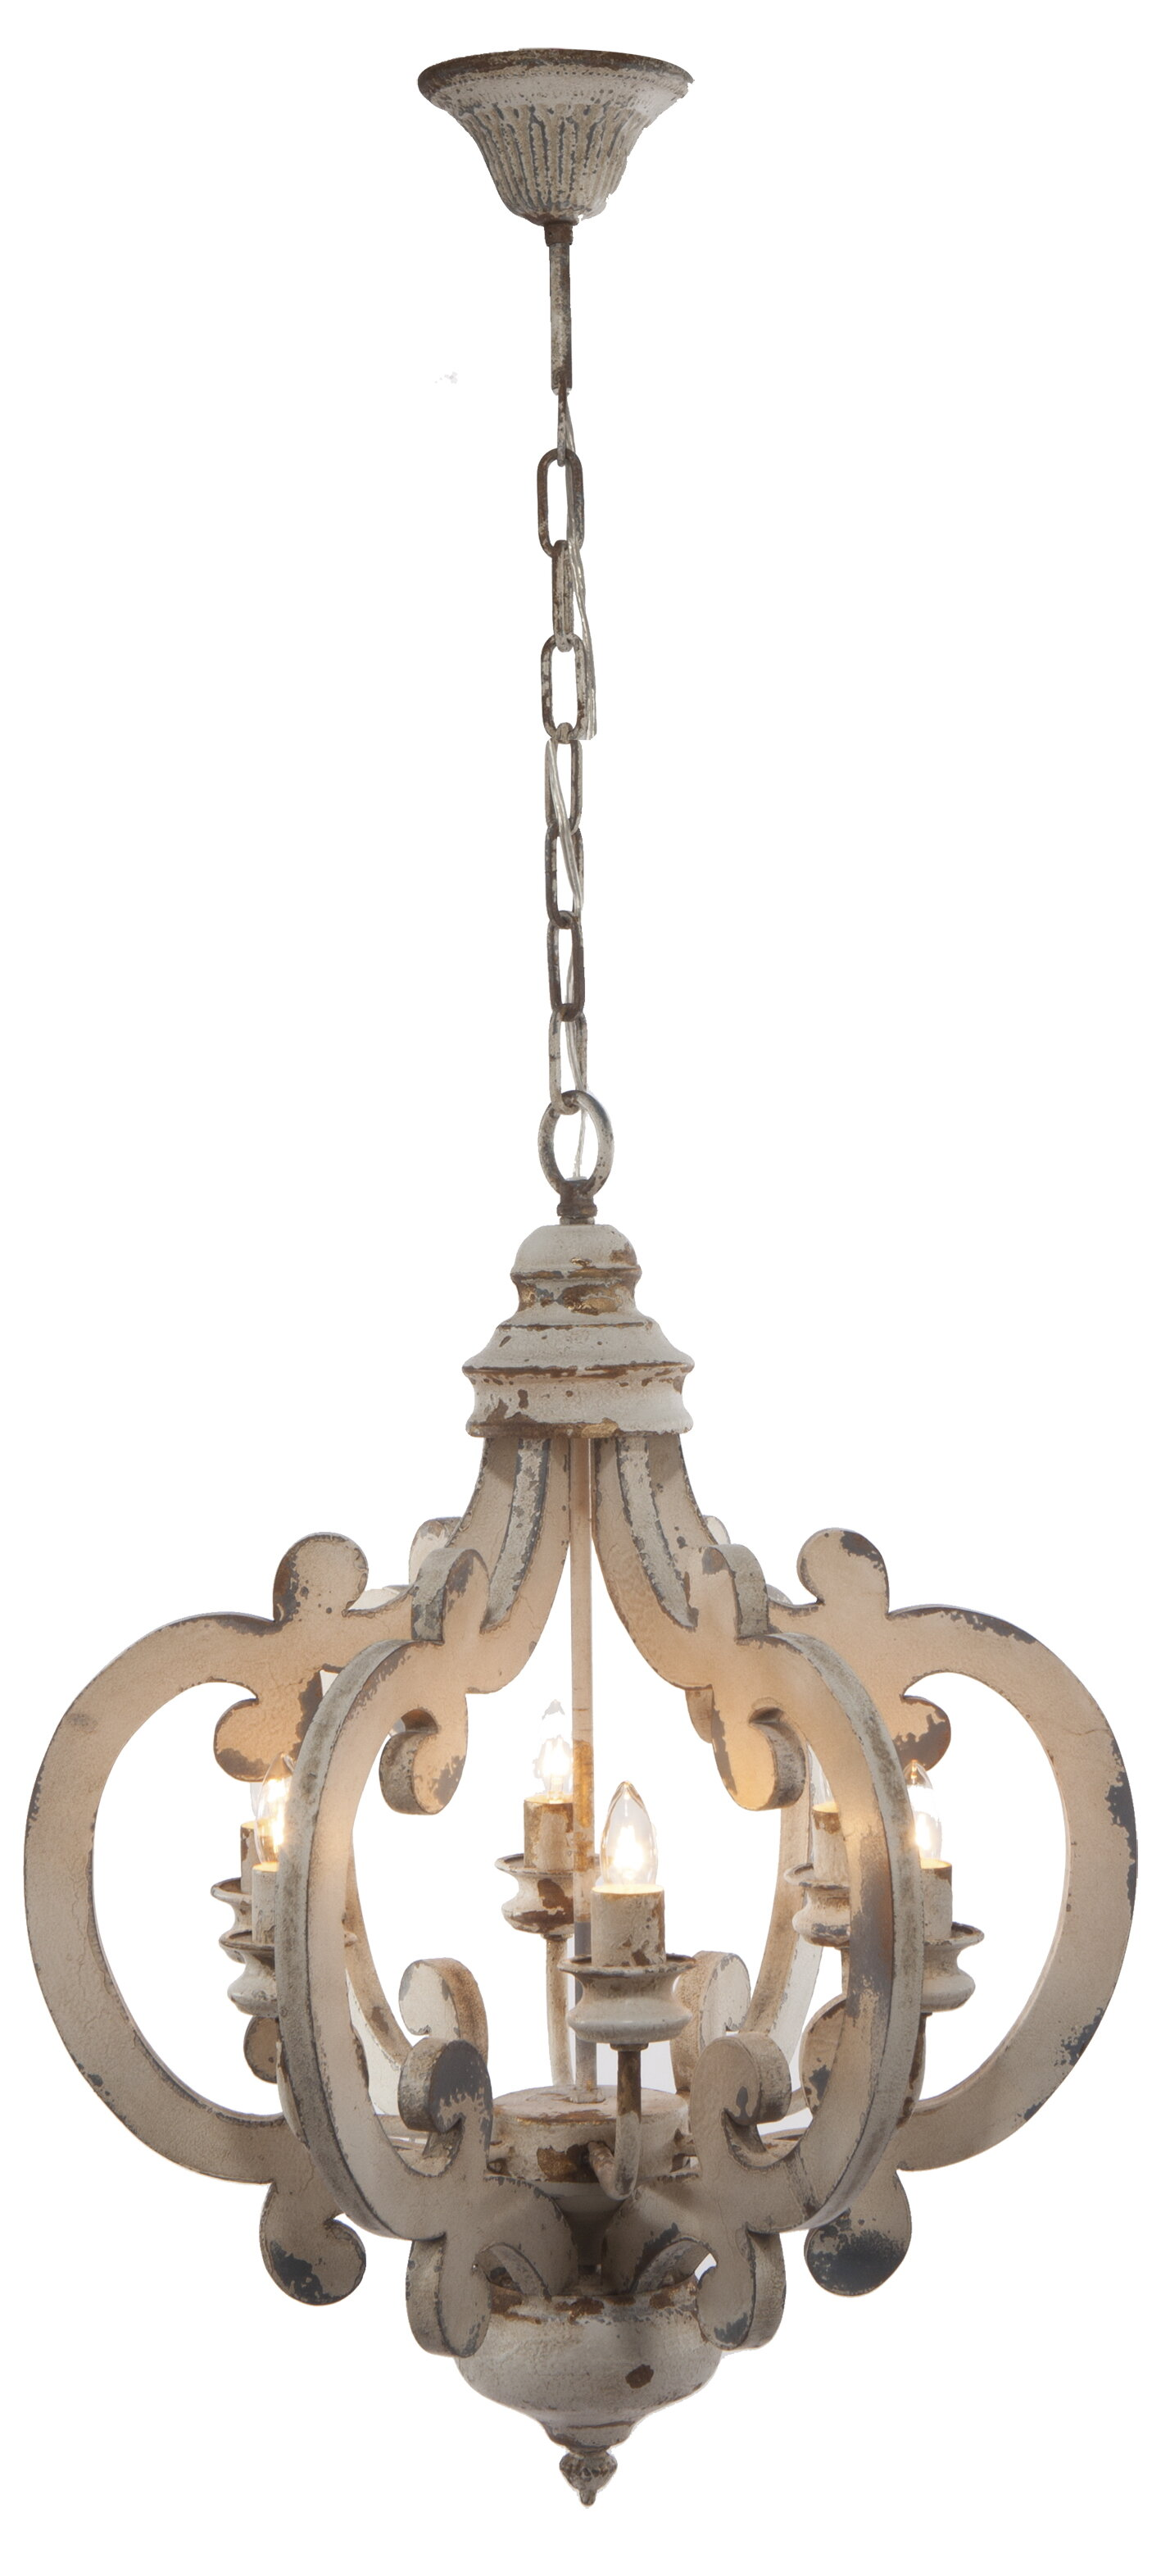 Lammers 6 Light Candle Style Chandelier & Reviews